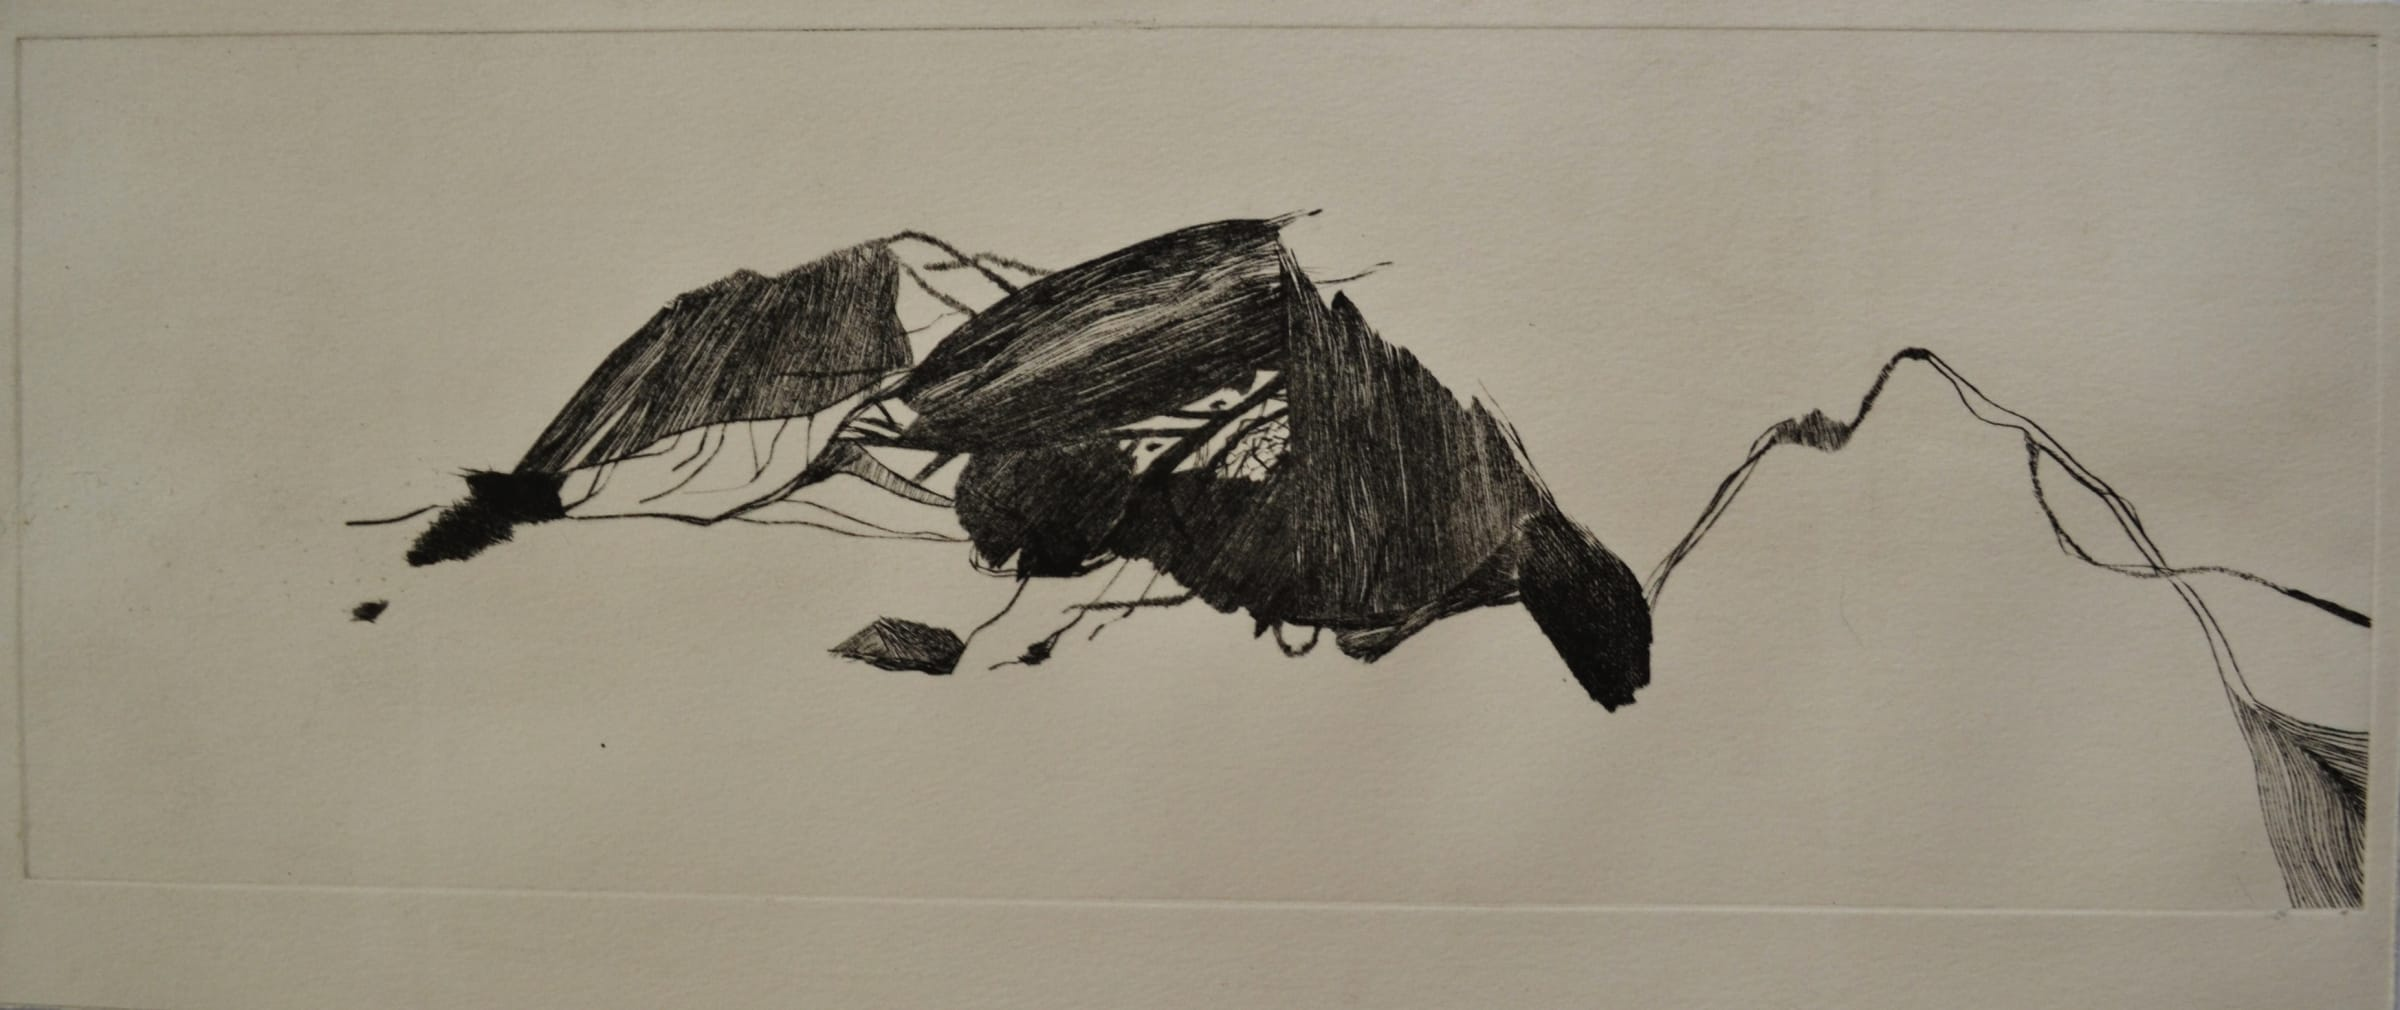 <span class=&#34;link fancybox-details-link&#34;><a href=&#34;/artists/51-kyra-pape/works/3220-kyra-pape-untitled-drypoint-2015/&#34;>View Detail Page</a></span><div class=&#34;artist&#34;><strong>Kyra Pape</strong></div> <div class=&#34;title&#34;><em>Untitled - Drypoint</em>, 2015</div> <div class=&#34;medium&#34;>Drypoint</div> <div class=&#34;dimensions&#34;>26.7cm x 61.3cm </div><div class=&#34;price&#34;>R2,850.00</div>